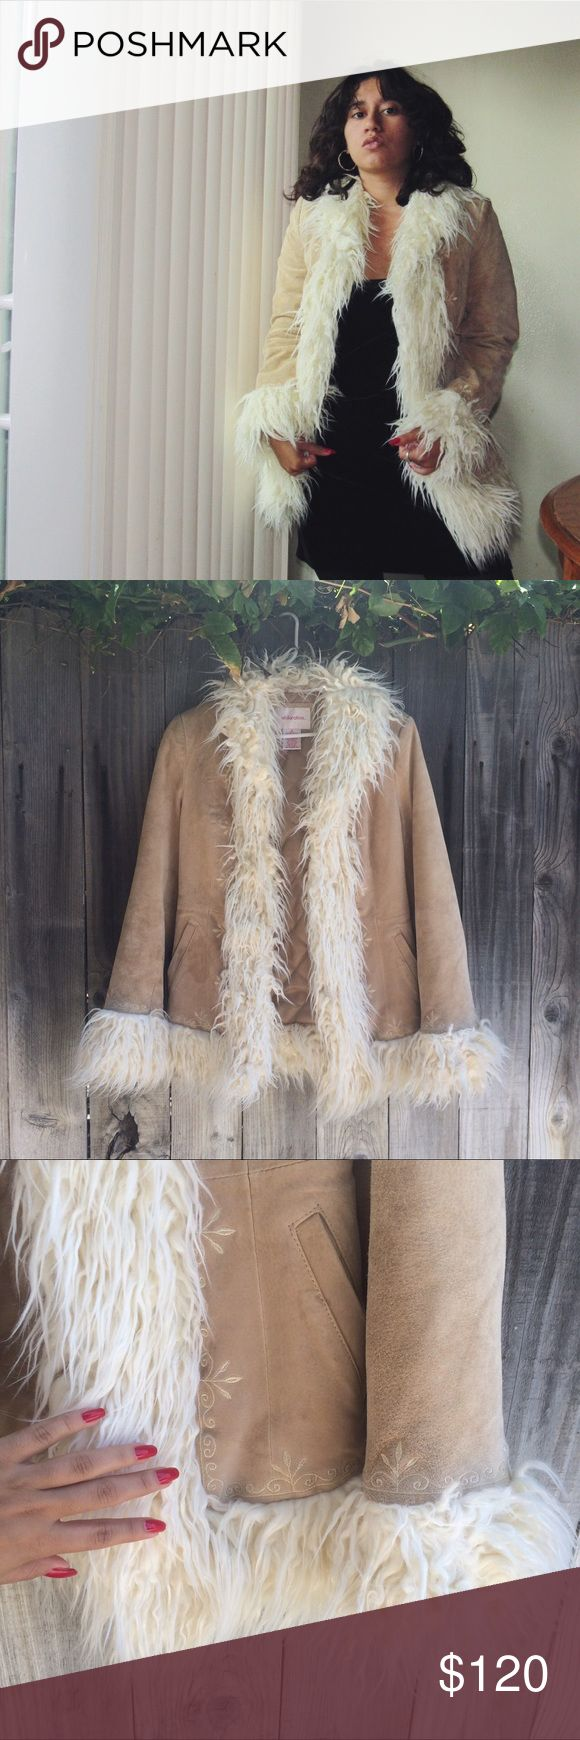 Penny Lane Suede Faux Fur Coat This amazing penny lane coat is made for all you almost famous gals, made out of faux fur trim and genuine leather lining, perfect for dancing around ur living room or going out, label says small but could also fit a medium CHEAPER IF BOUGHT ON DEPOP #penny lane #shearling #coat #jacket #almost famous #70s #vintage #suede #faux fur Vintage Jackets & Coats